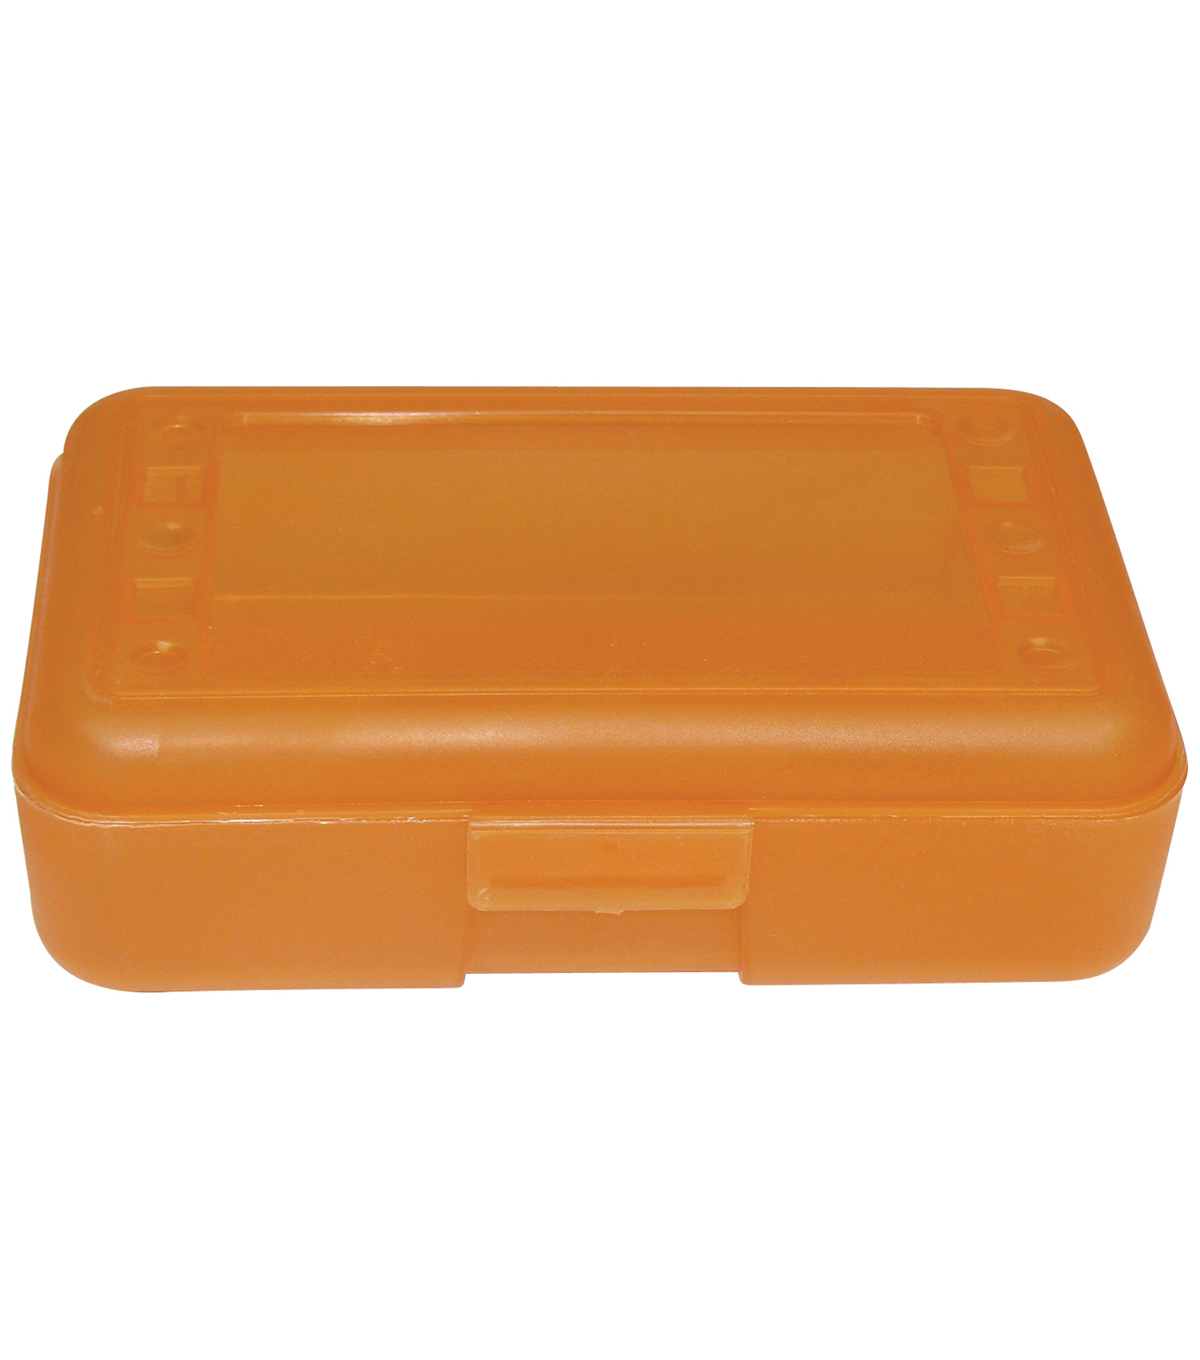 Romanoff Products Pencil Box, Pack of 12, Tangerine